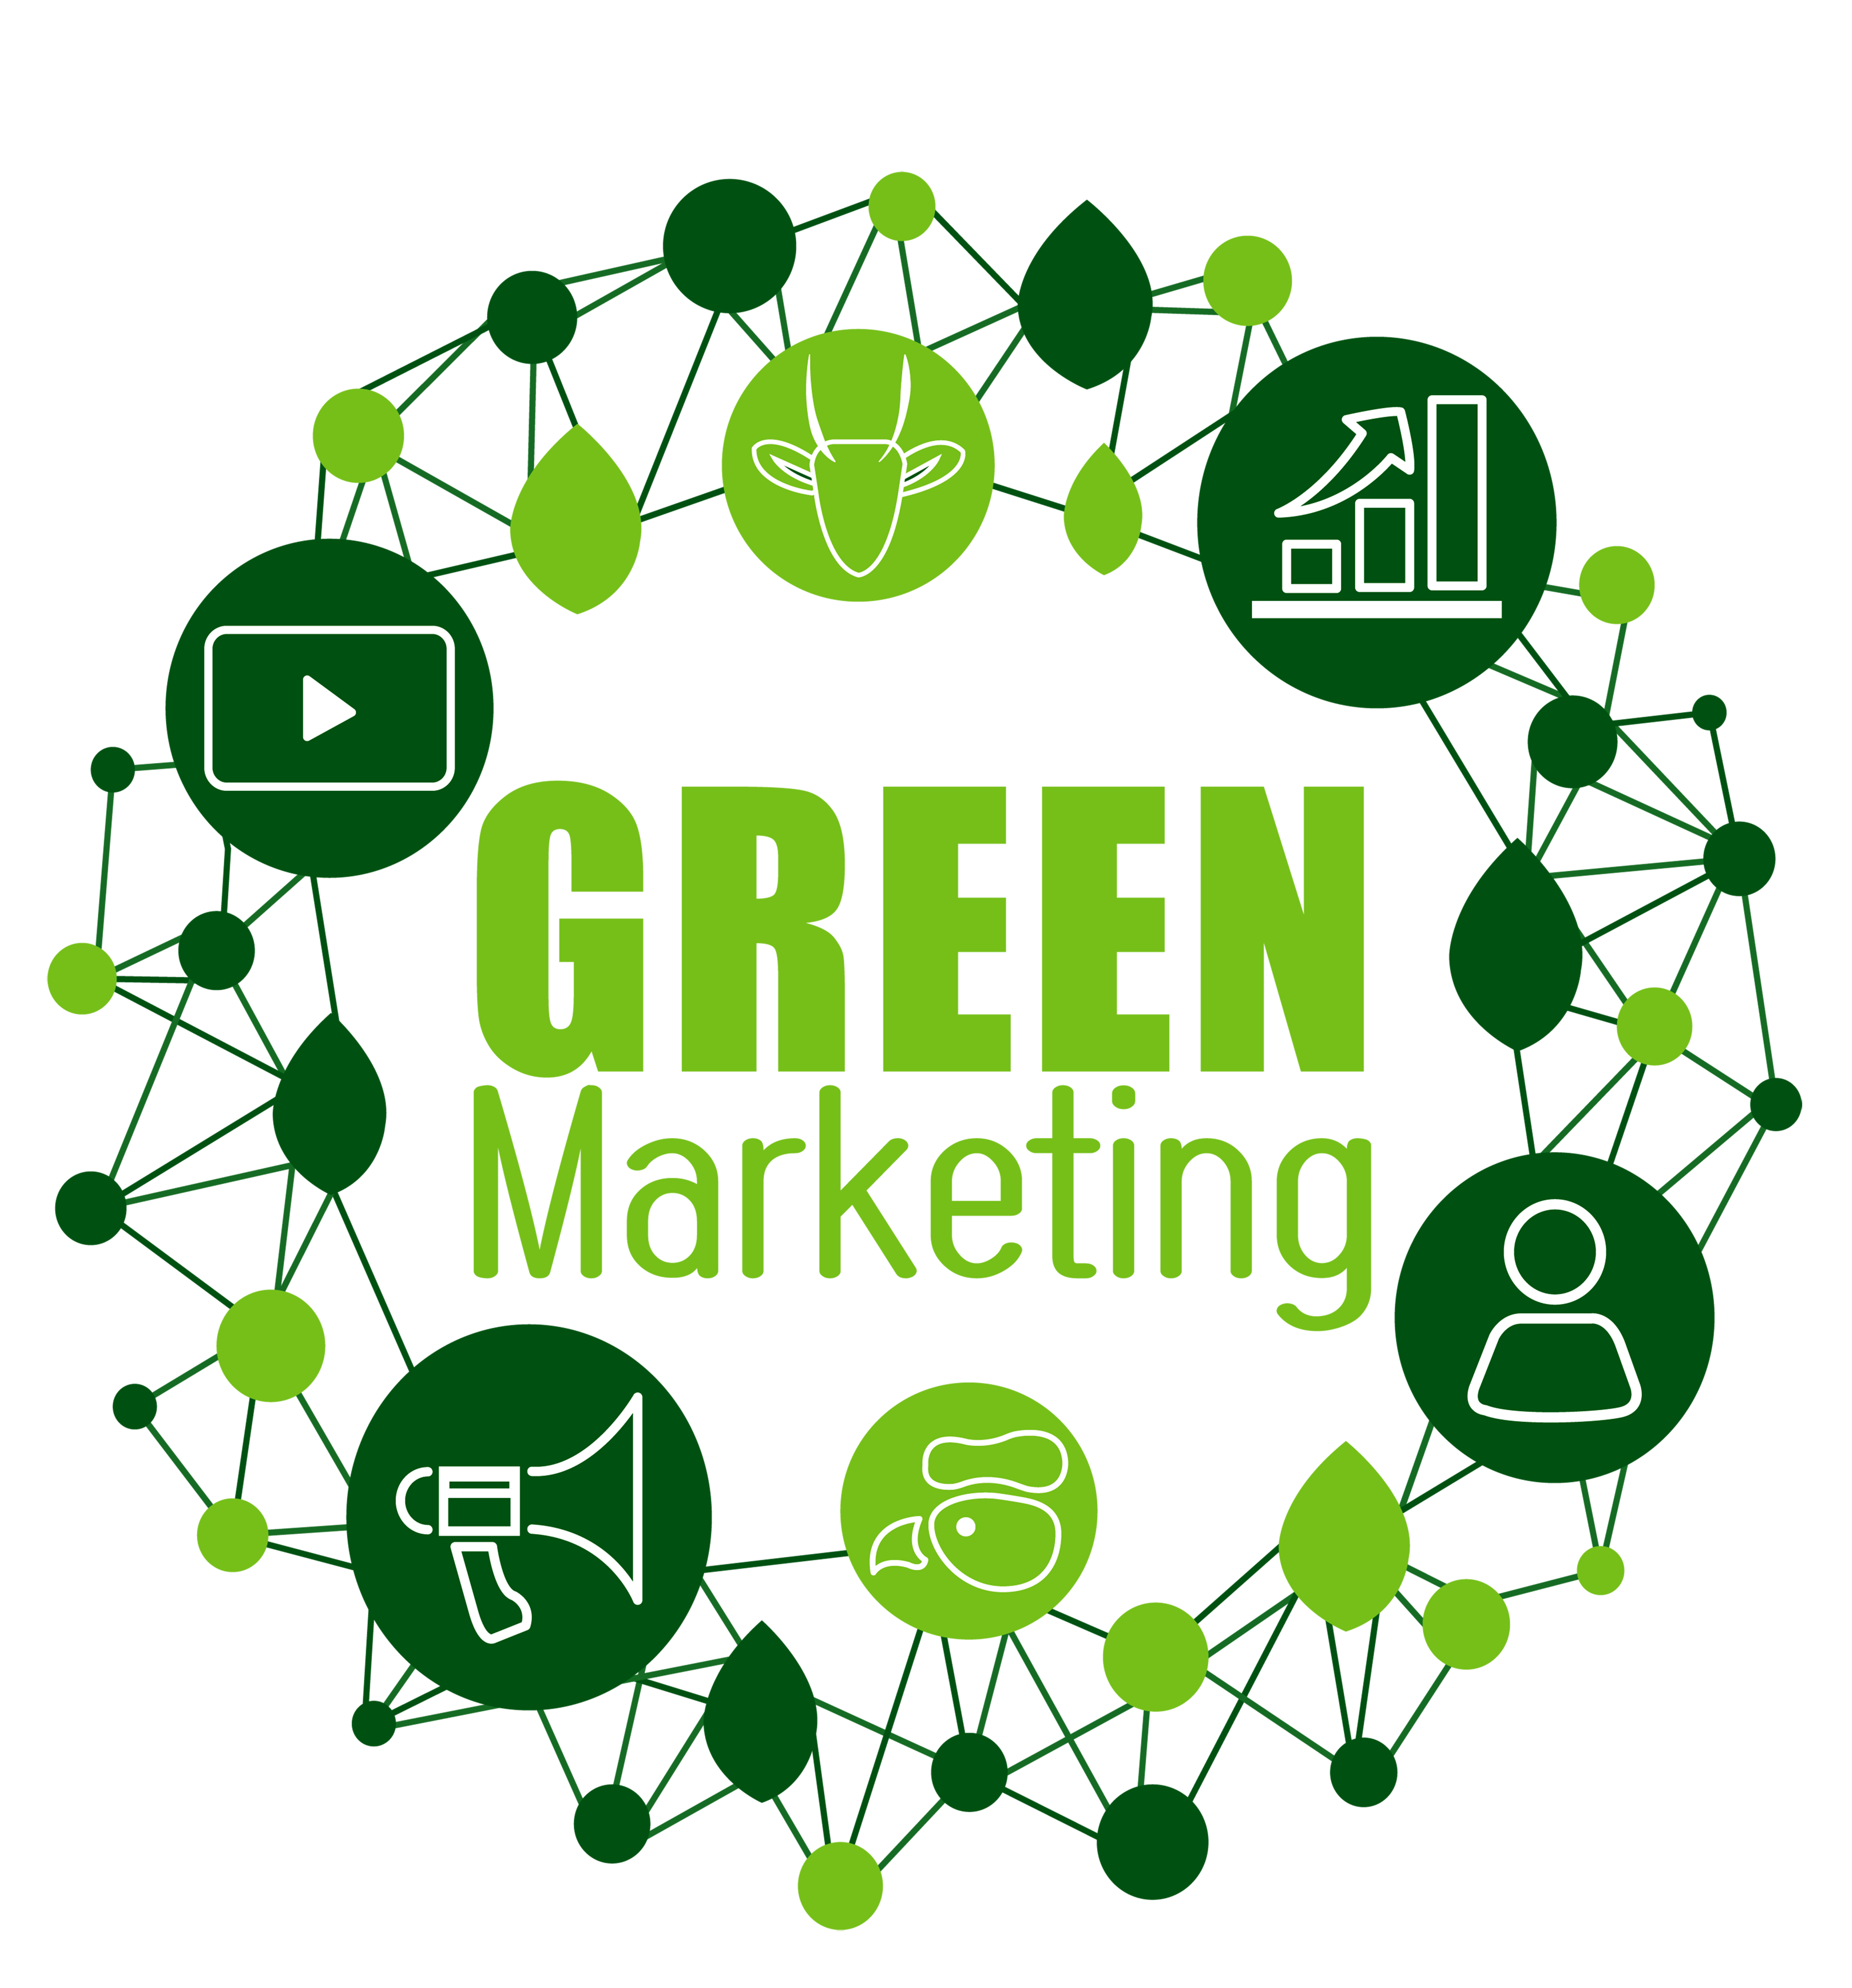 journal green marketing Results of regression analysis reveals the view that overall green values, awareness about green products and practices and the perception regarding seriousness of marketing companies towards green marketing had positive significant impact on consumer persuasion to buy and prefer green products over conventional products.